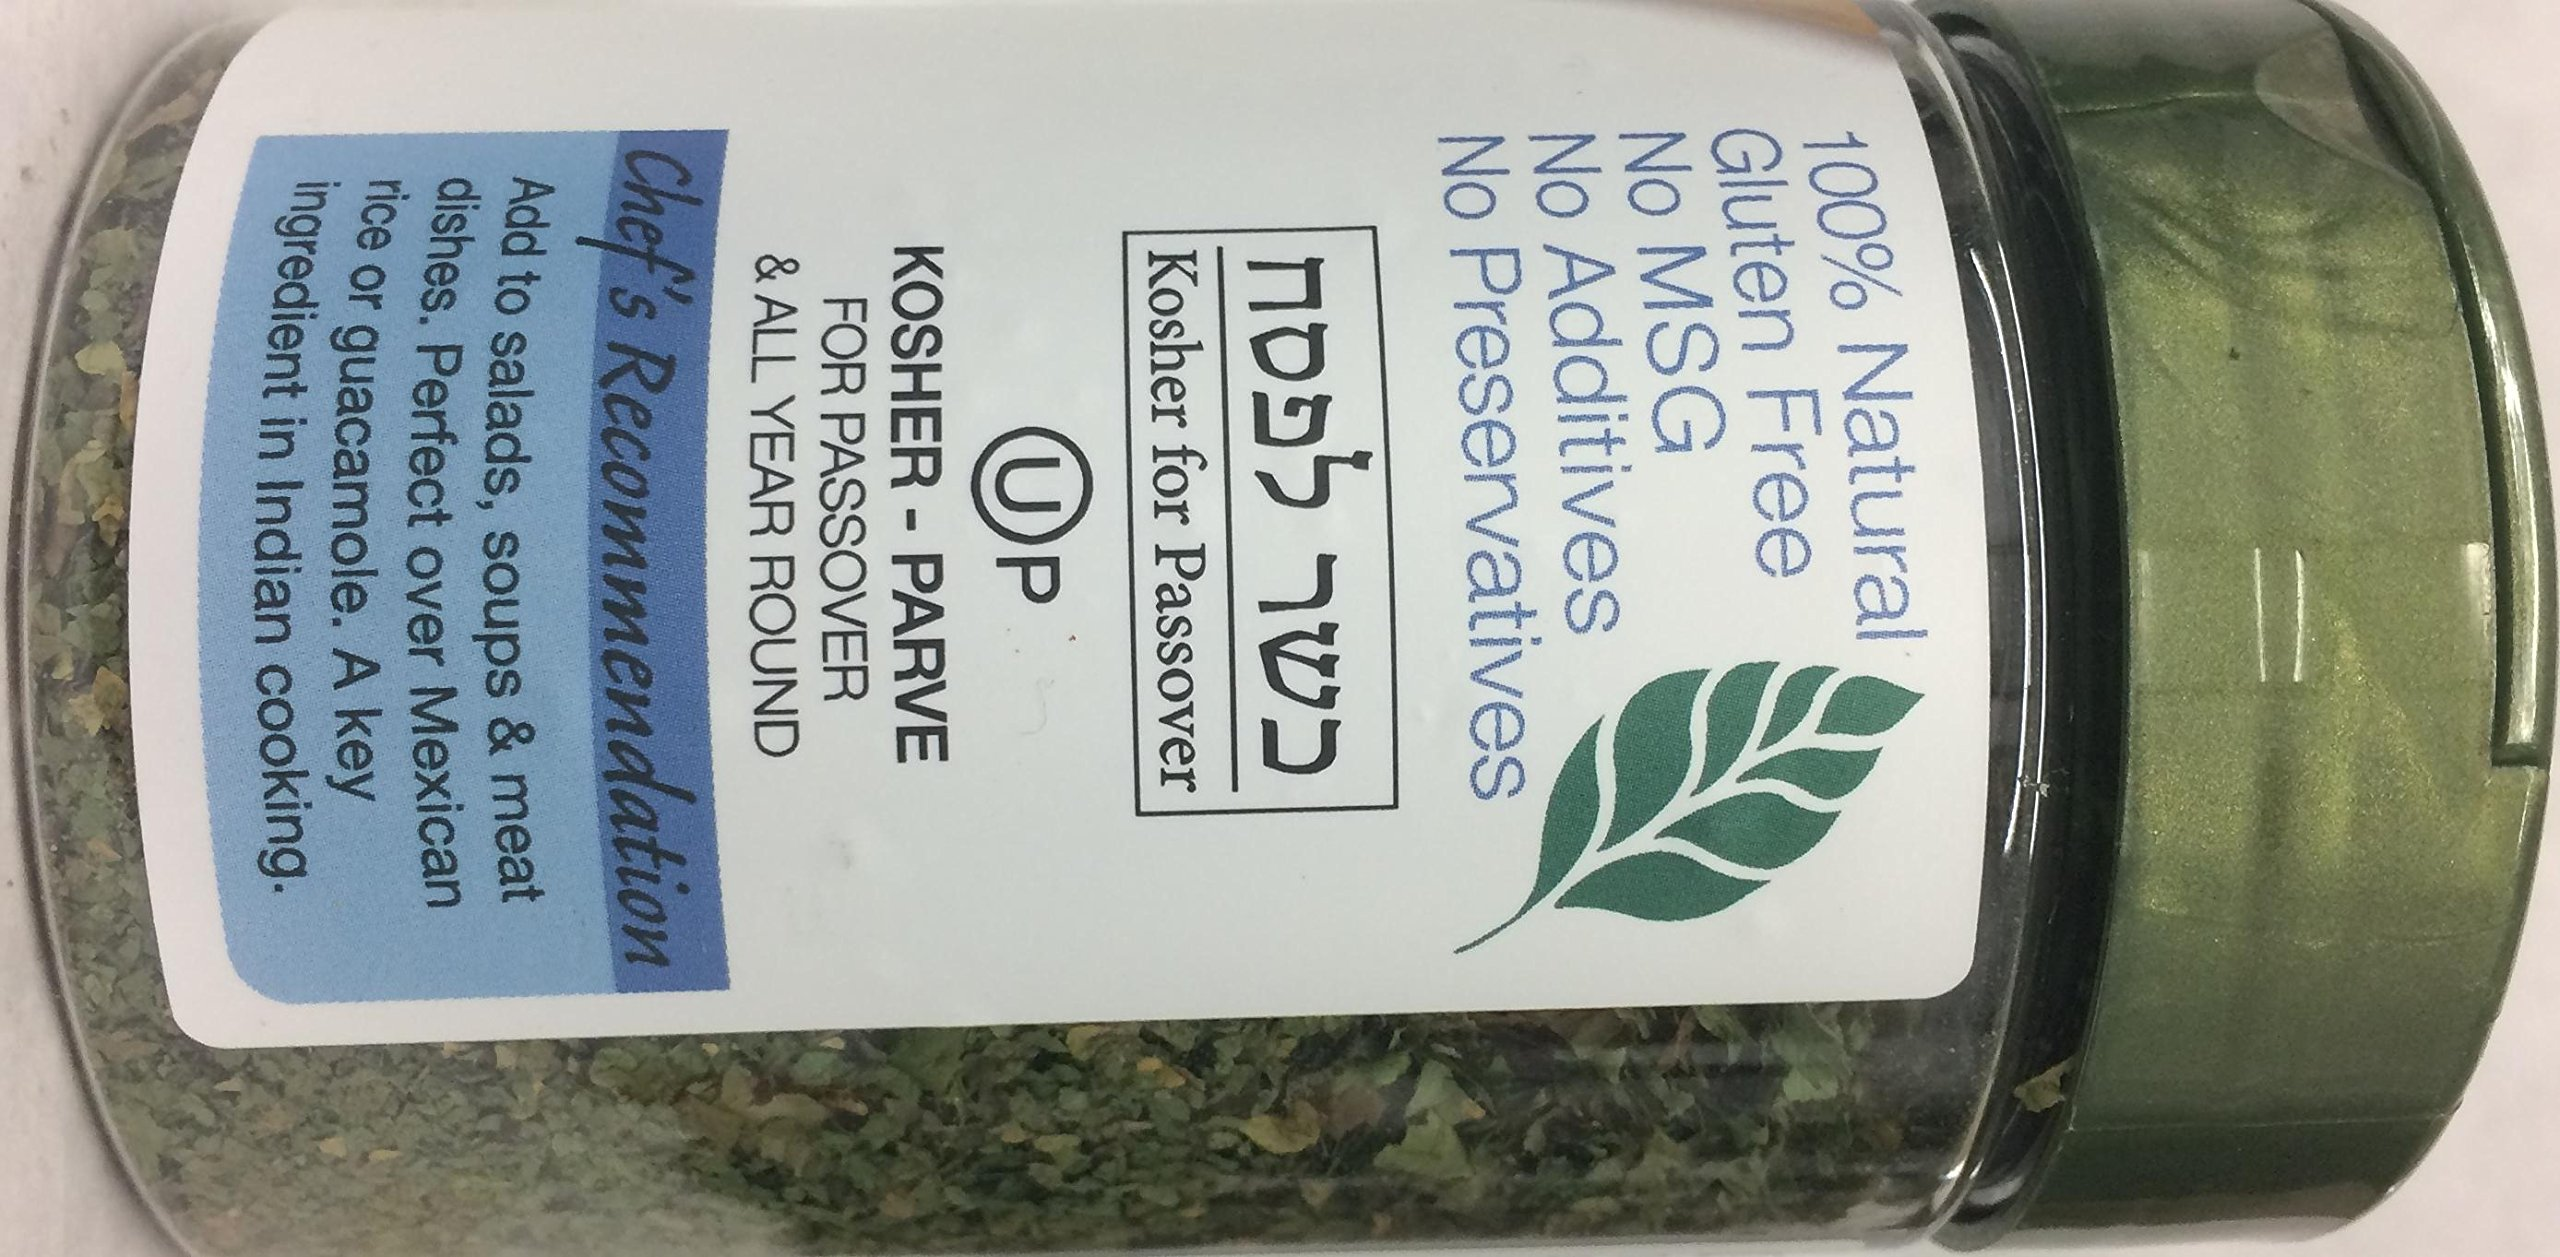 Pereg Herb Cilantro Coriander Leaves Kosher For Passover 0.7 Oz. Pack Of 1.